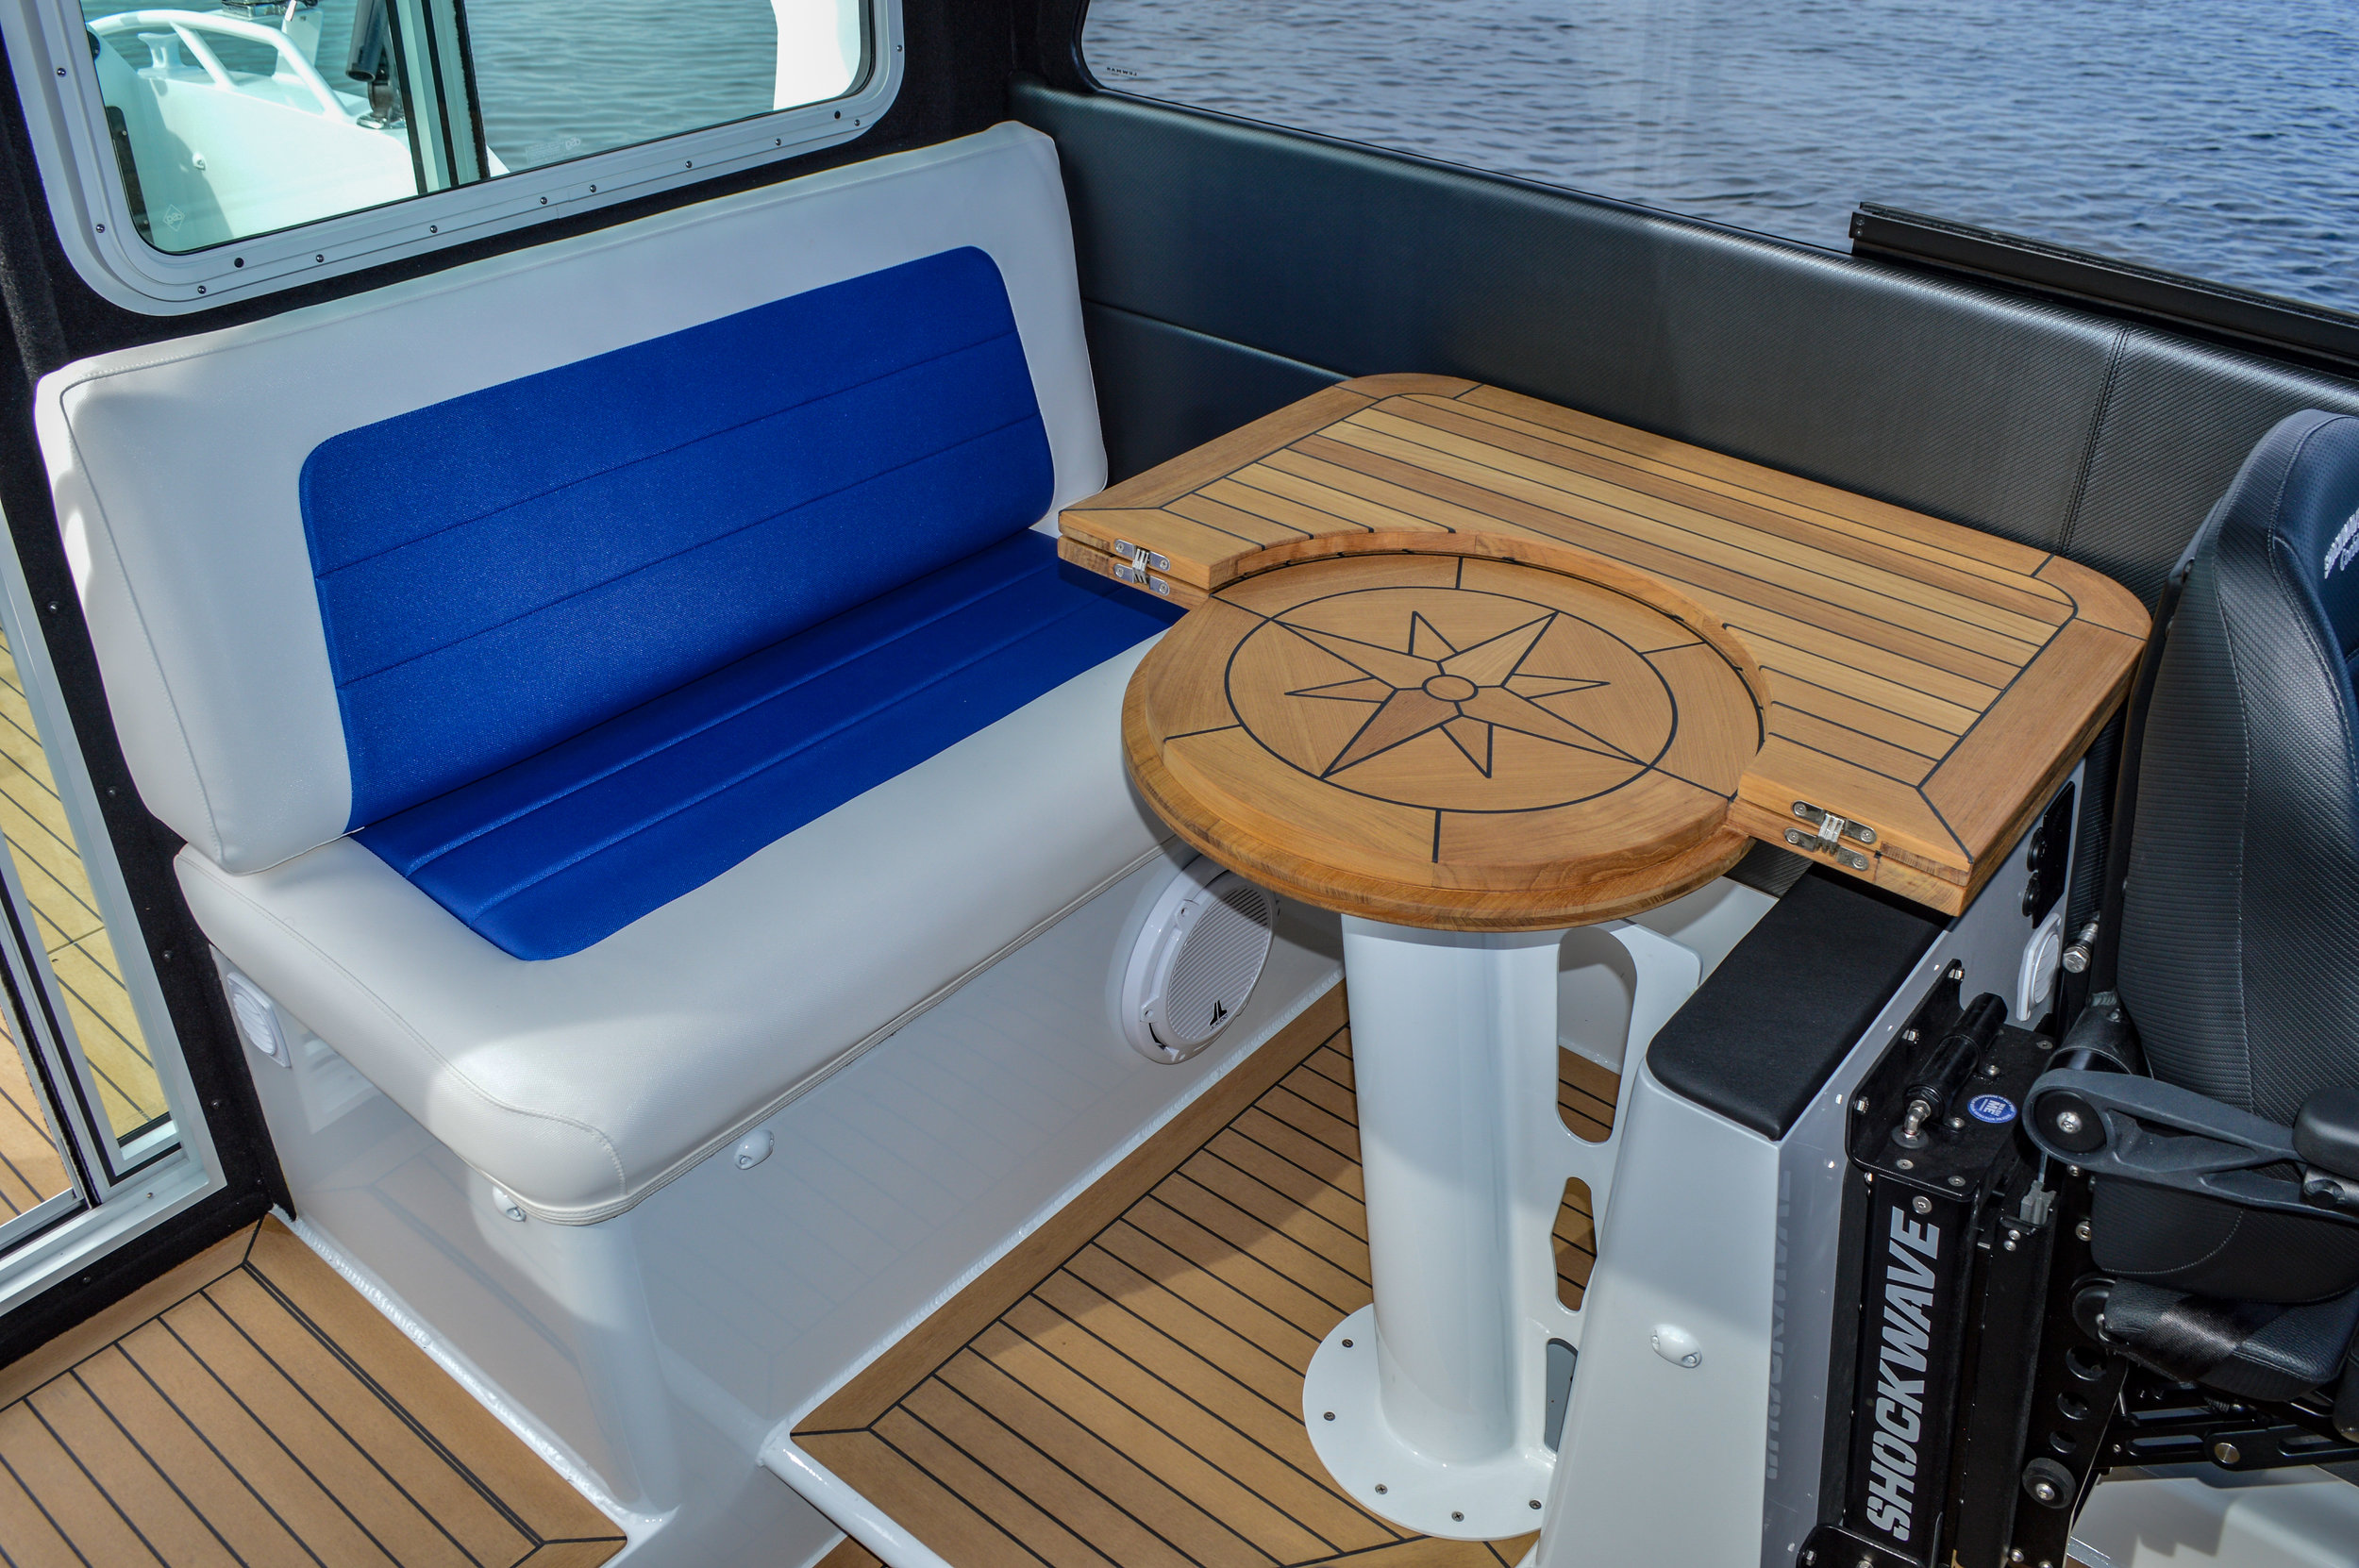 A TABLE FOR TWO - Its beautiful teak table is the center piece of the Yachtlines main cabin. Its smart bi-folding design provides a reservation of space for either entertaining or moving about the cabin.